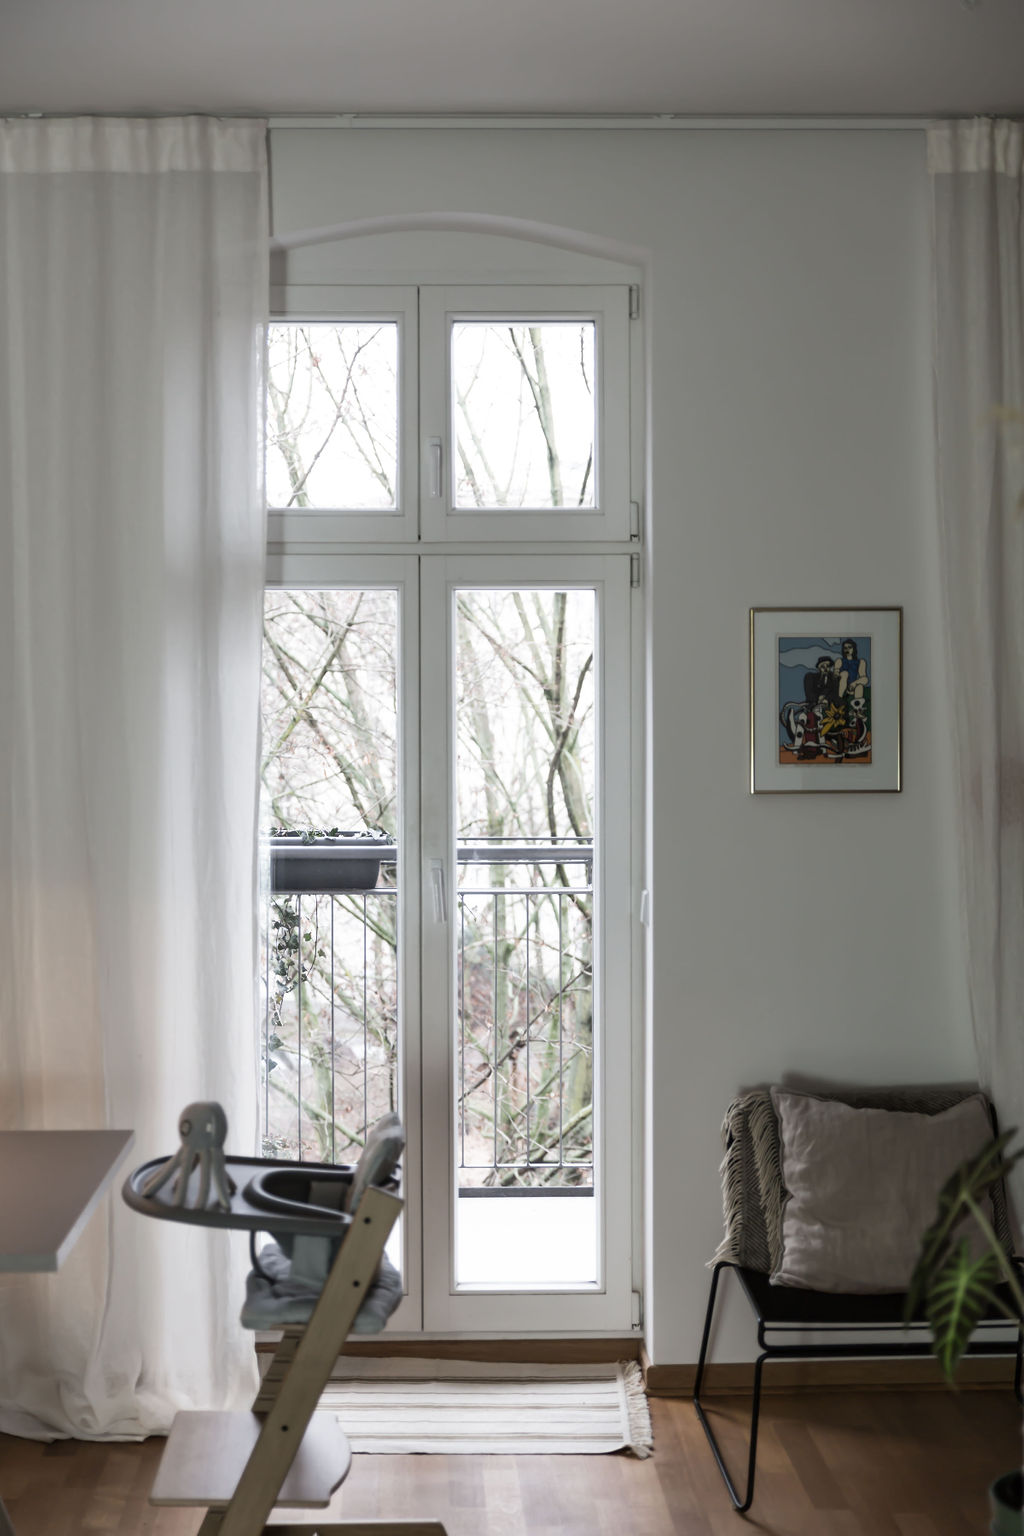 At home with Annetta from Salty Interiors